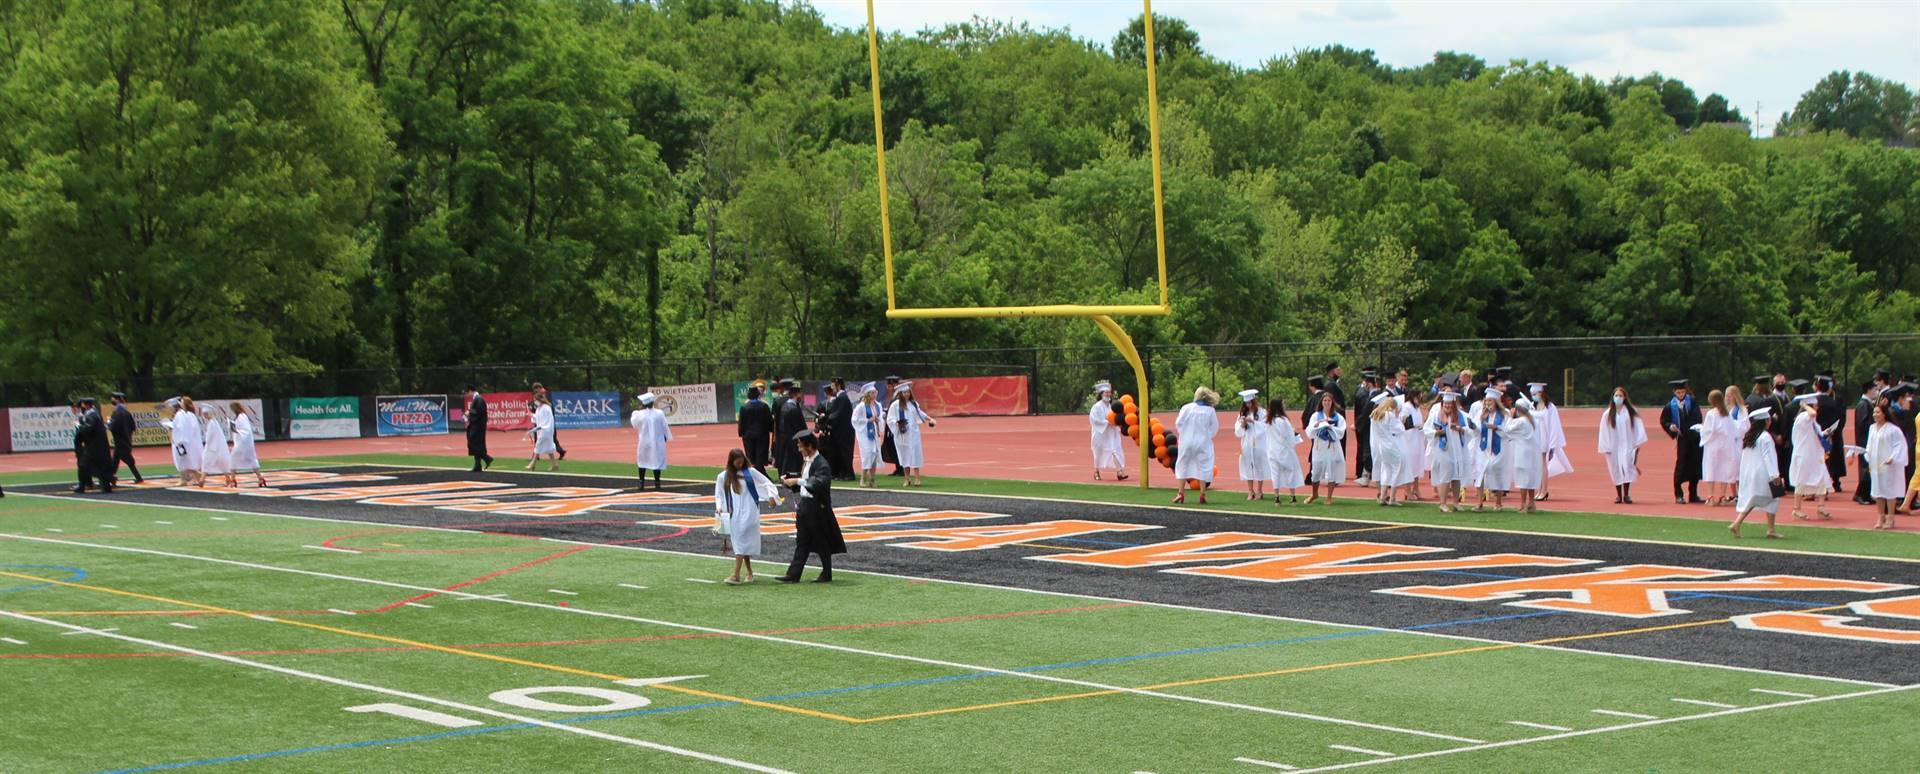 graduates gathering in the end zone